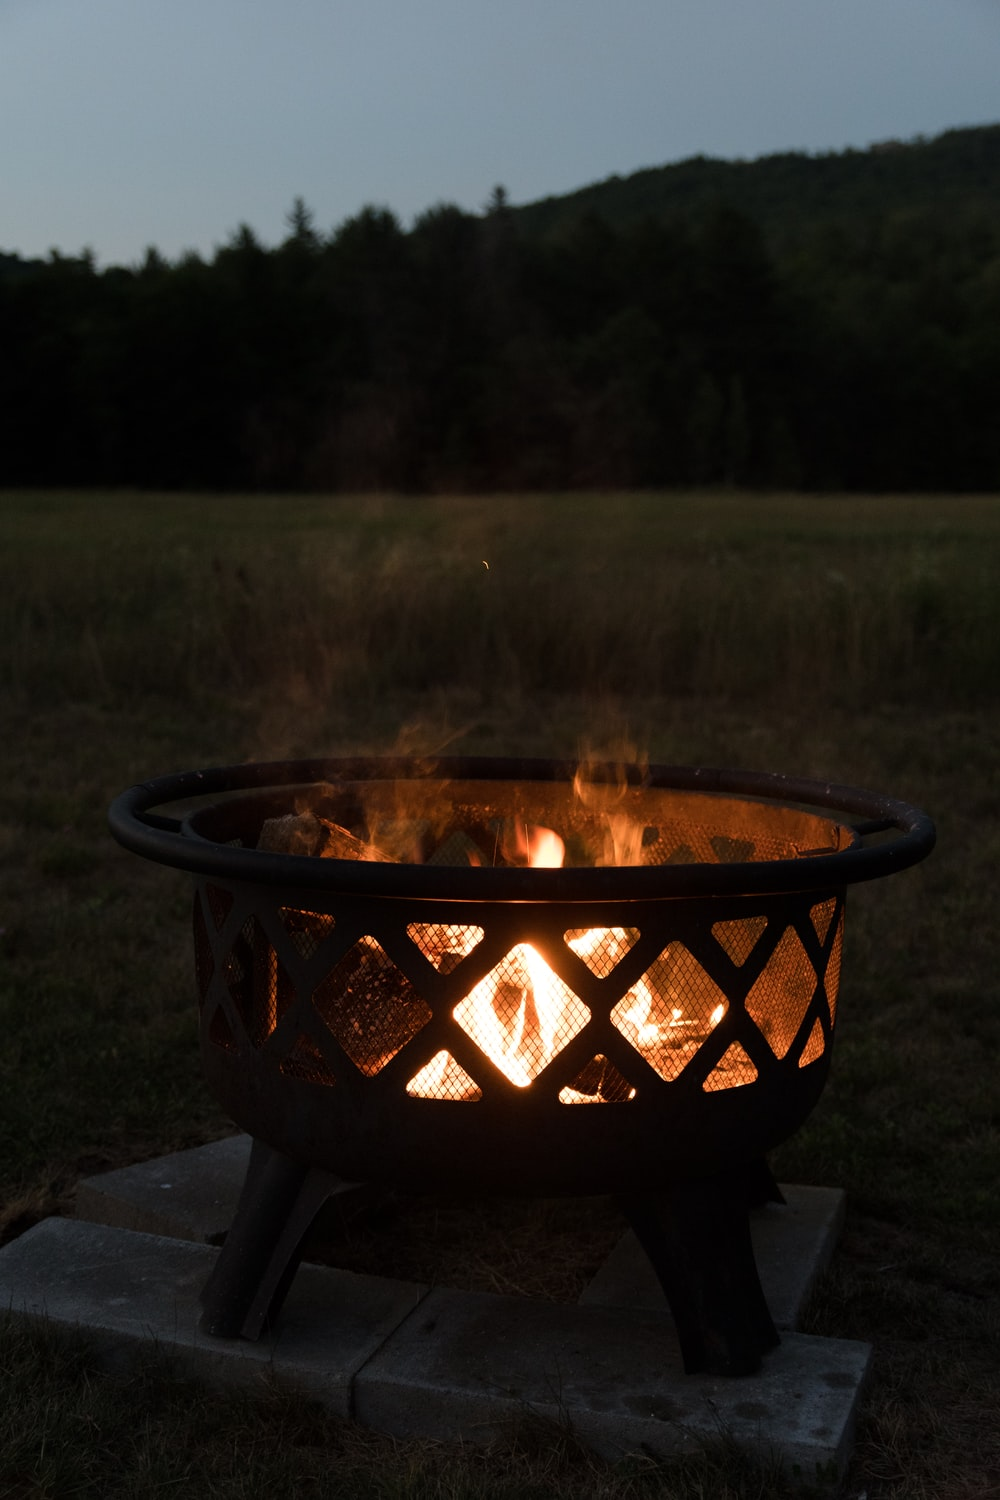 round black fire pit during daytime